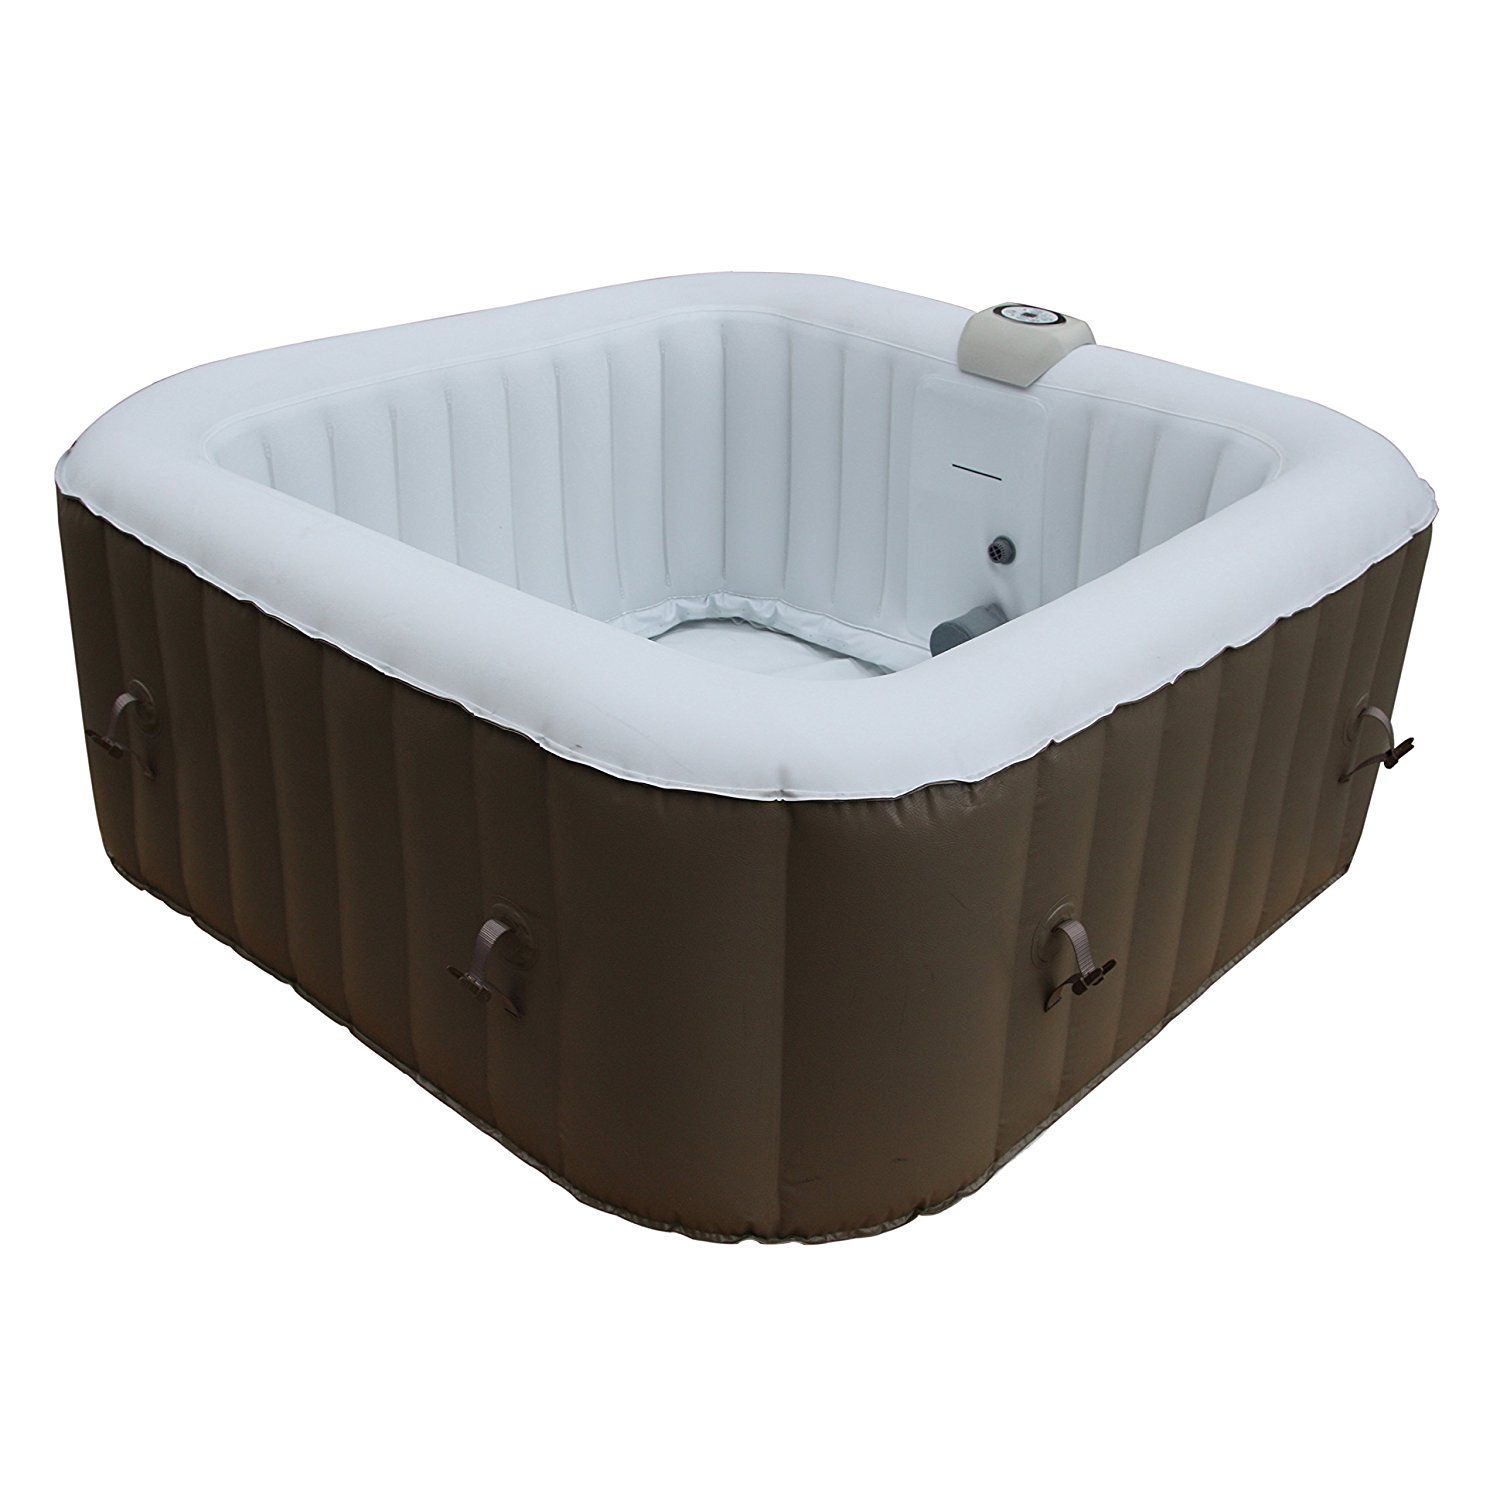 HTISQ4BR Square Inflatable Portable Hot Tub Personal Spa, 4 Person, 160 Gallon,